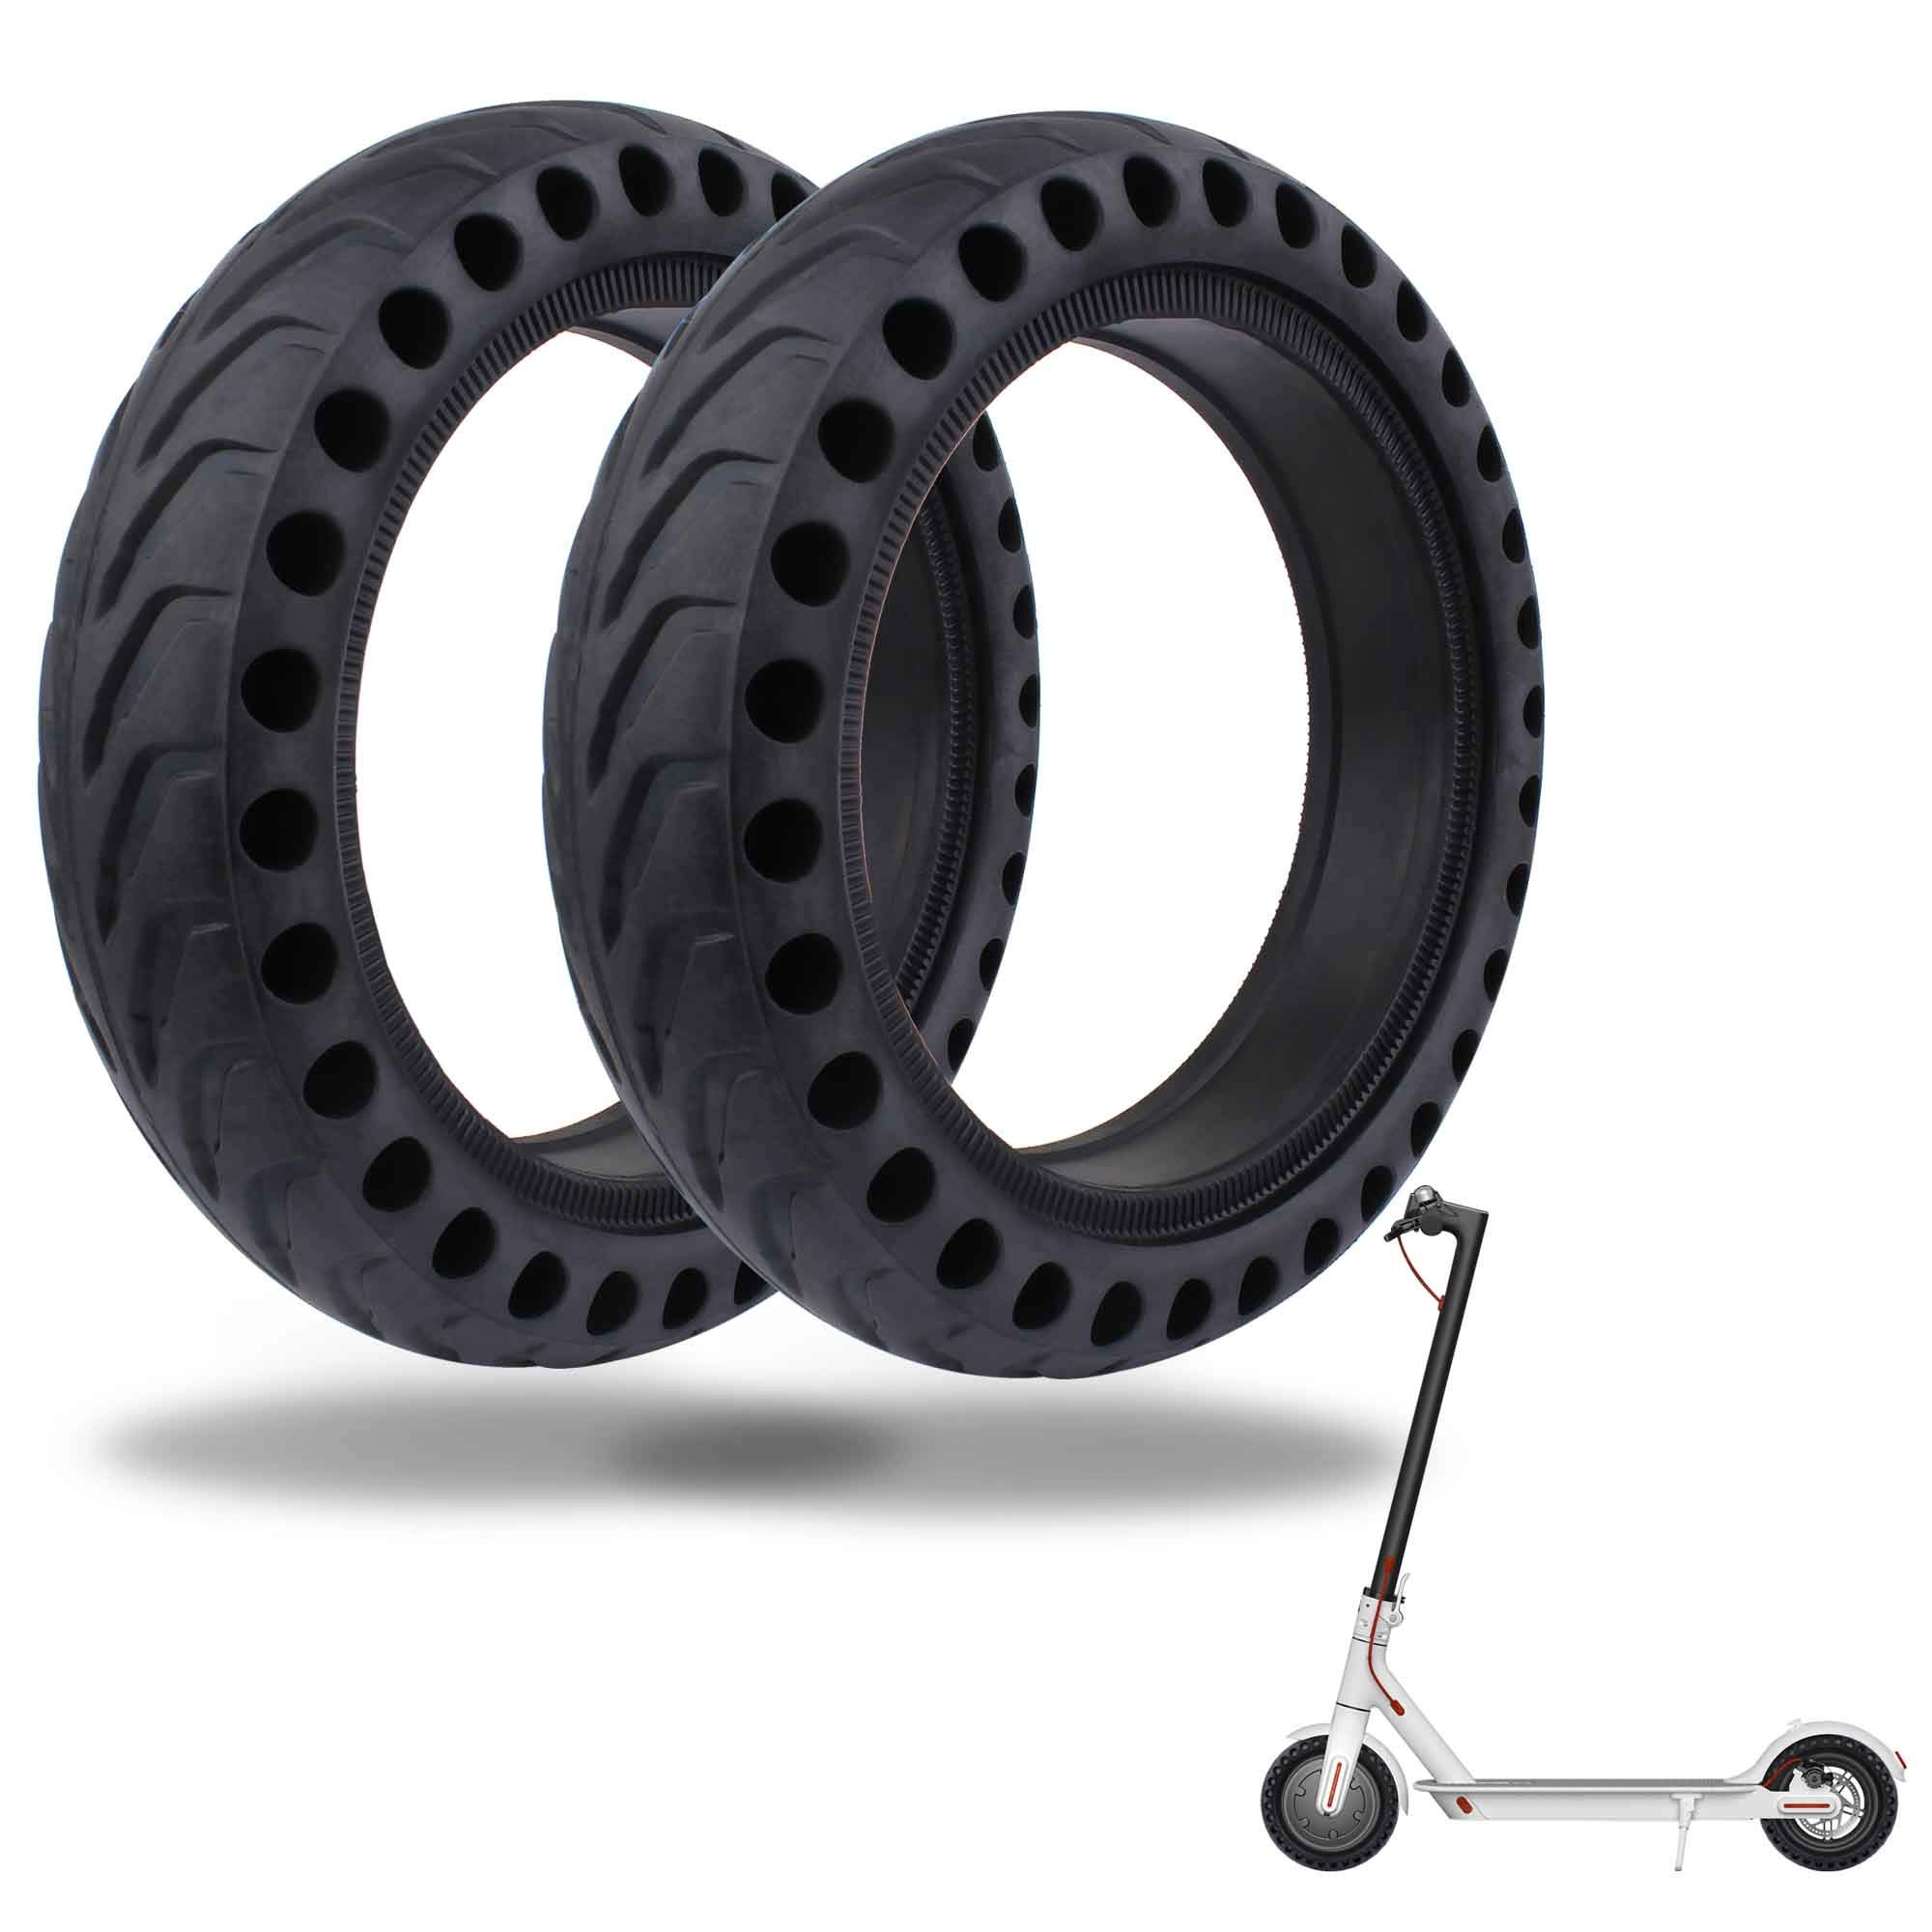 TOMALL Honeycomb Rubber Damping Solid Tire 8.5 Inch Front/Rear Tire Wheel Replacement for Xiaomi M365 Electric Scooter 2PCS by TOMALL